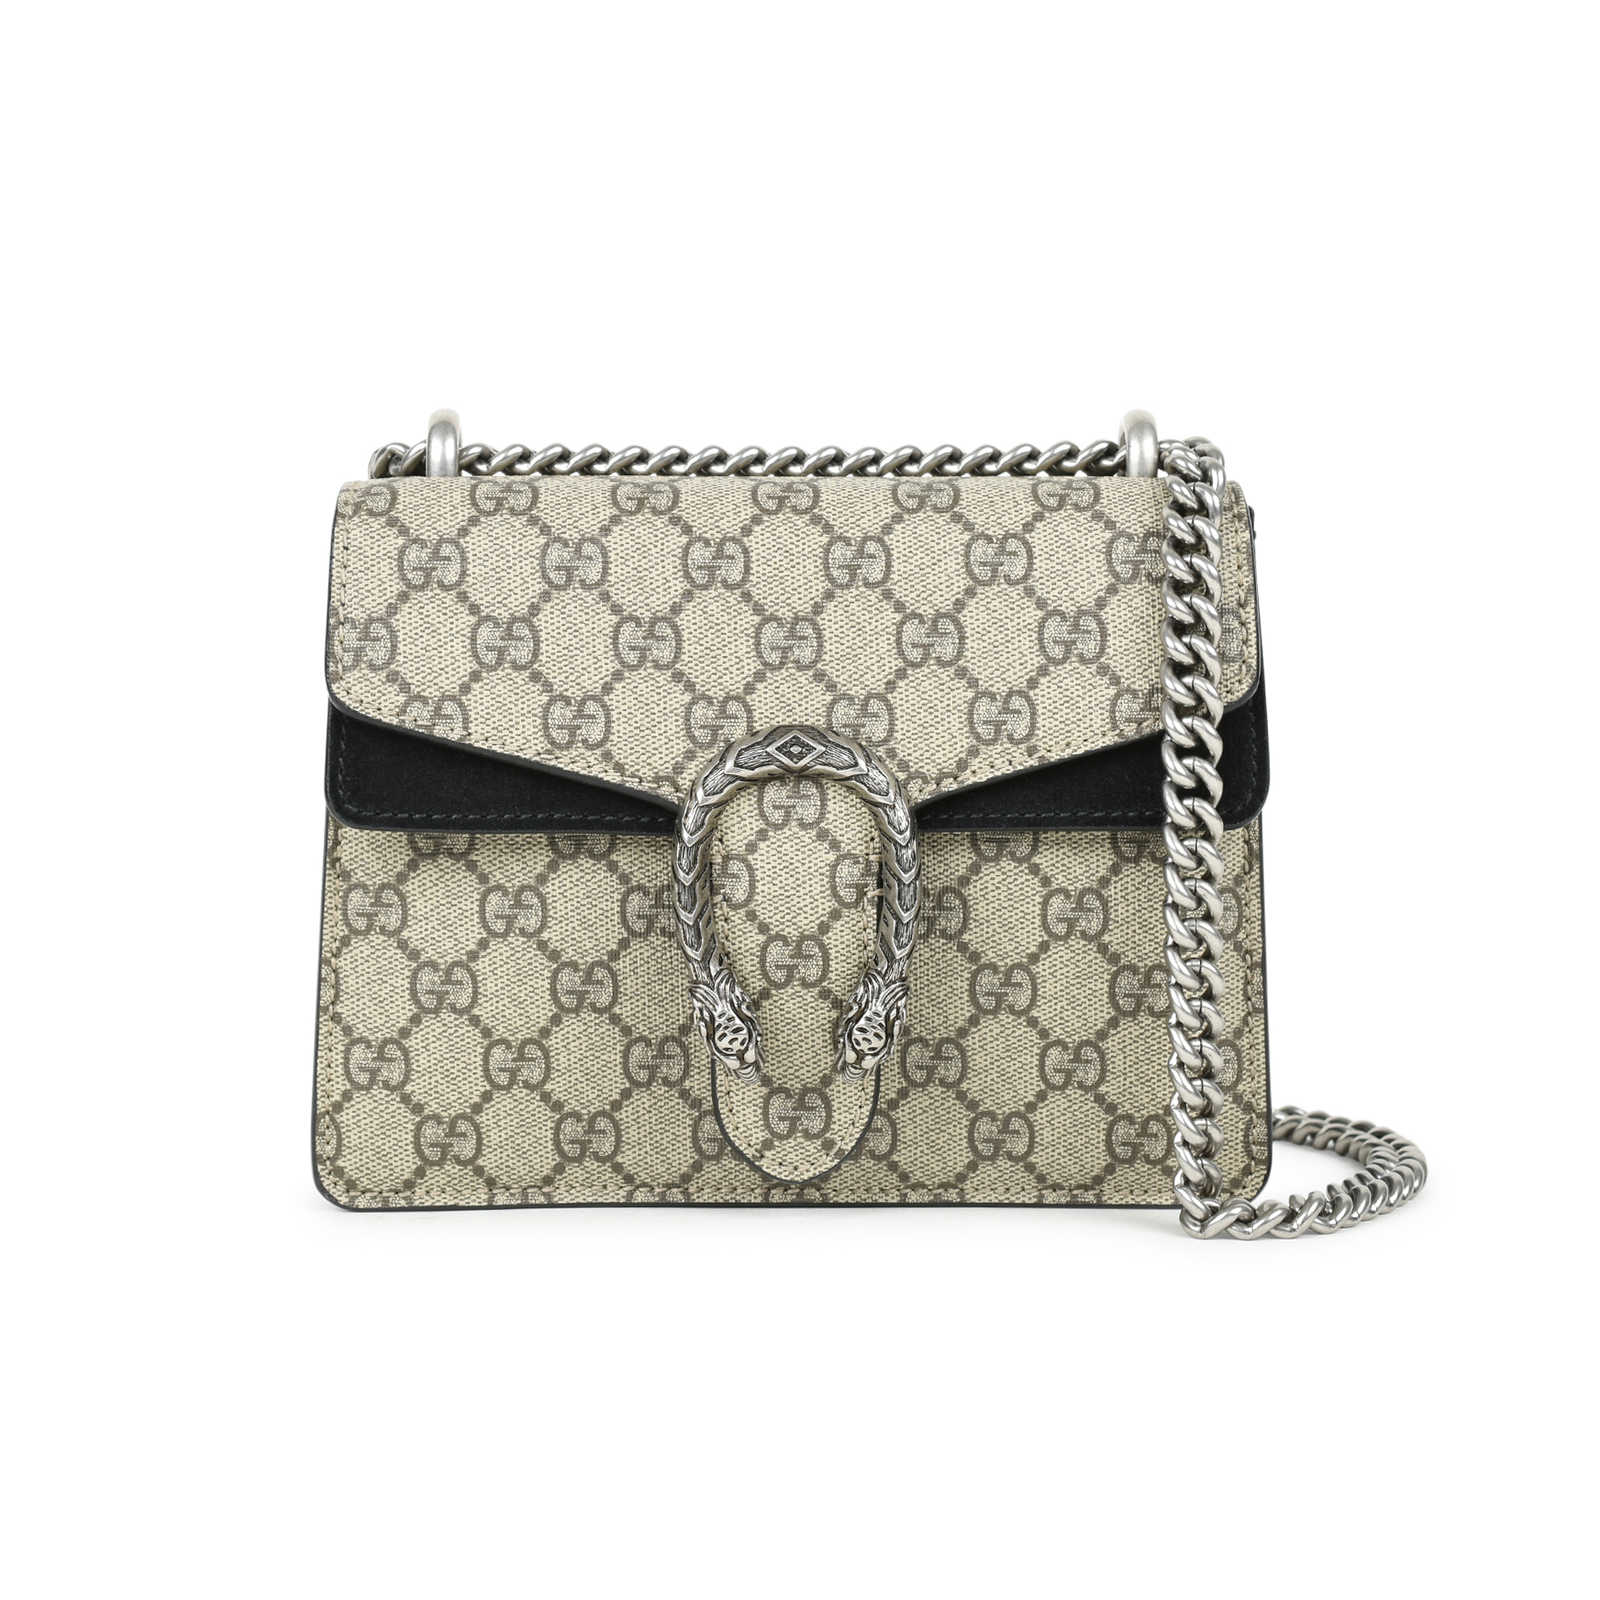 a817ee570a97 Authentic Second Hand Gucci Dionysus Monogram GG Supreme Mini Bag  (PSS-240-00220 ...